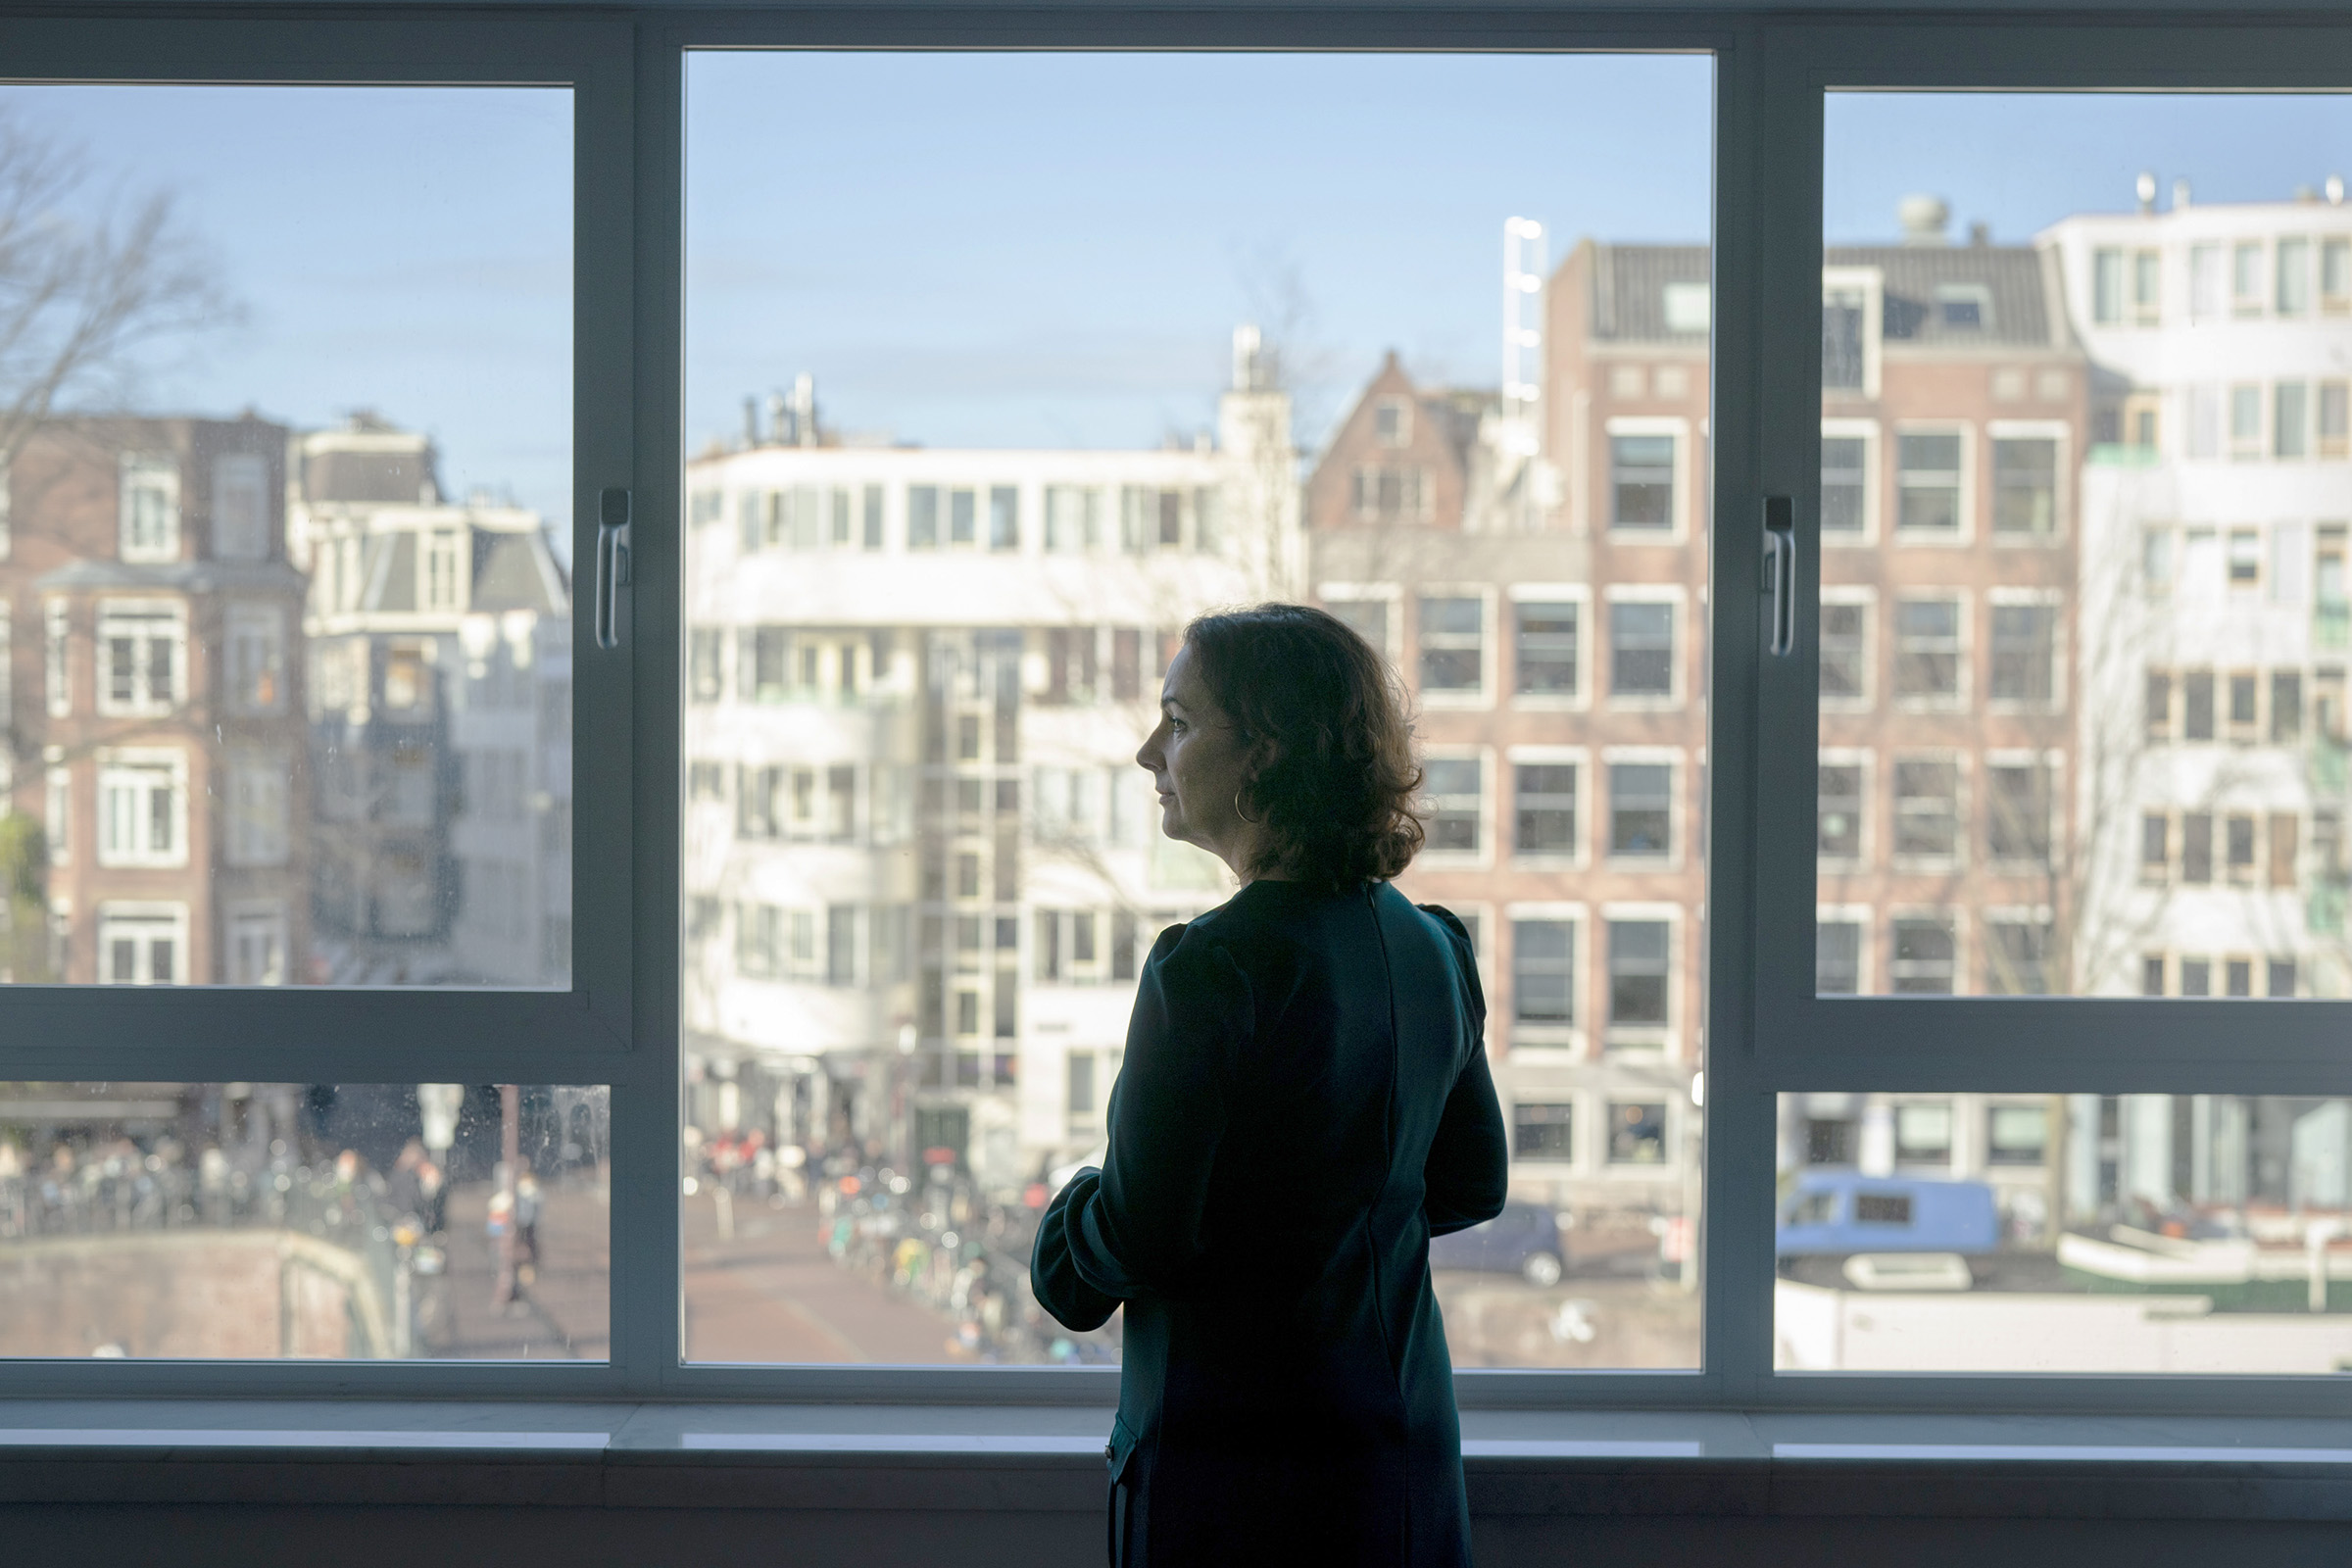 Femke Halsema, mayor of Amsterdam, poses for a photograph in her office in Amsterdam, Netherlands, on Nov. 30, 2018.